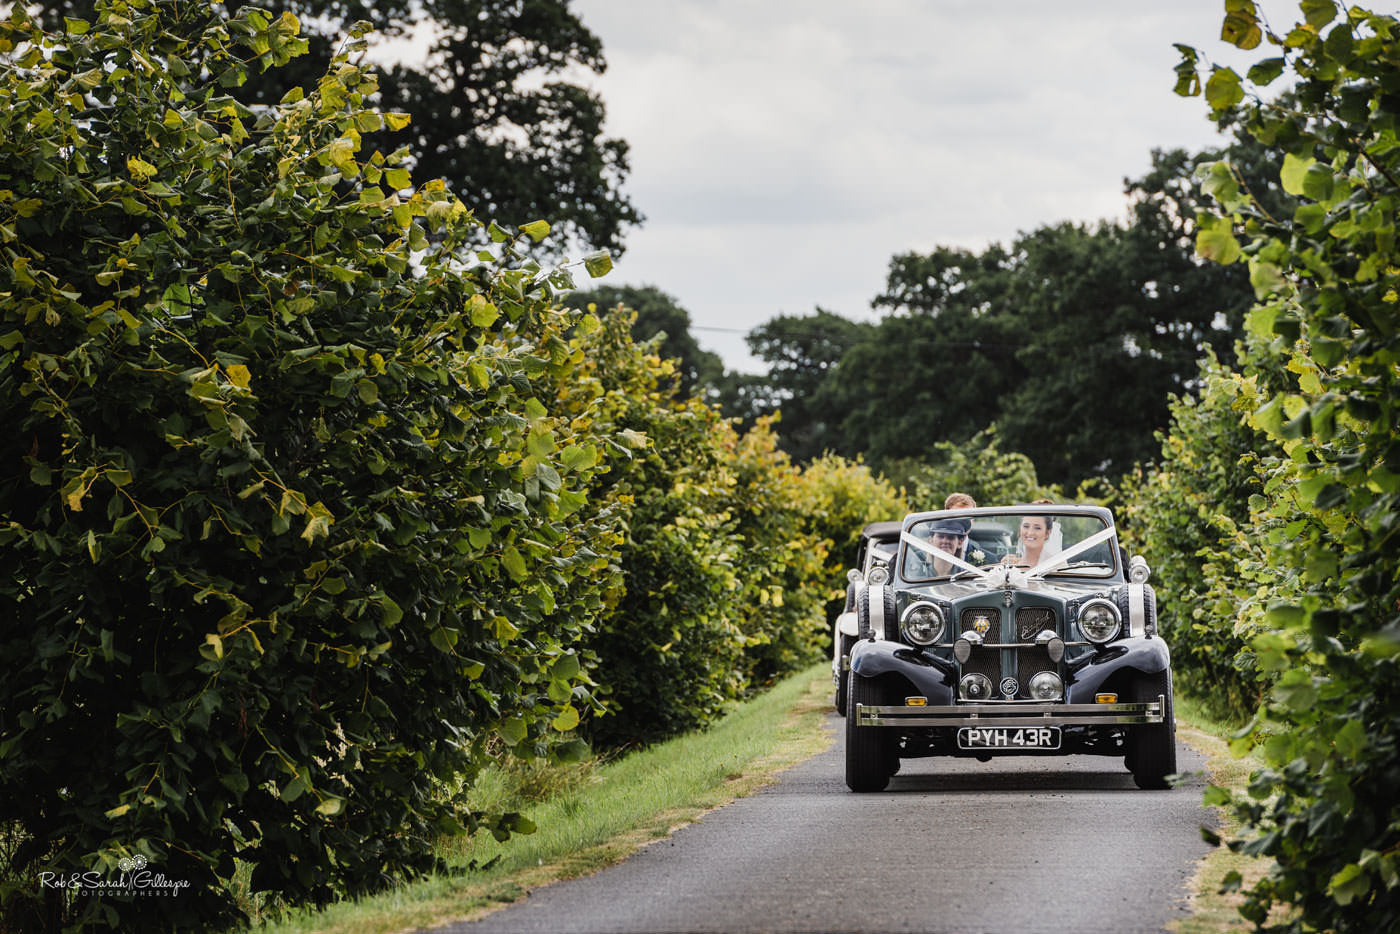 Wedding cars arrive at Delbury Hall in Shropshire